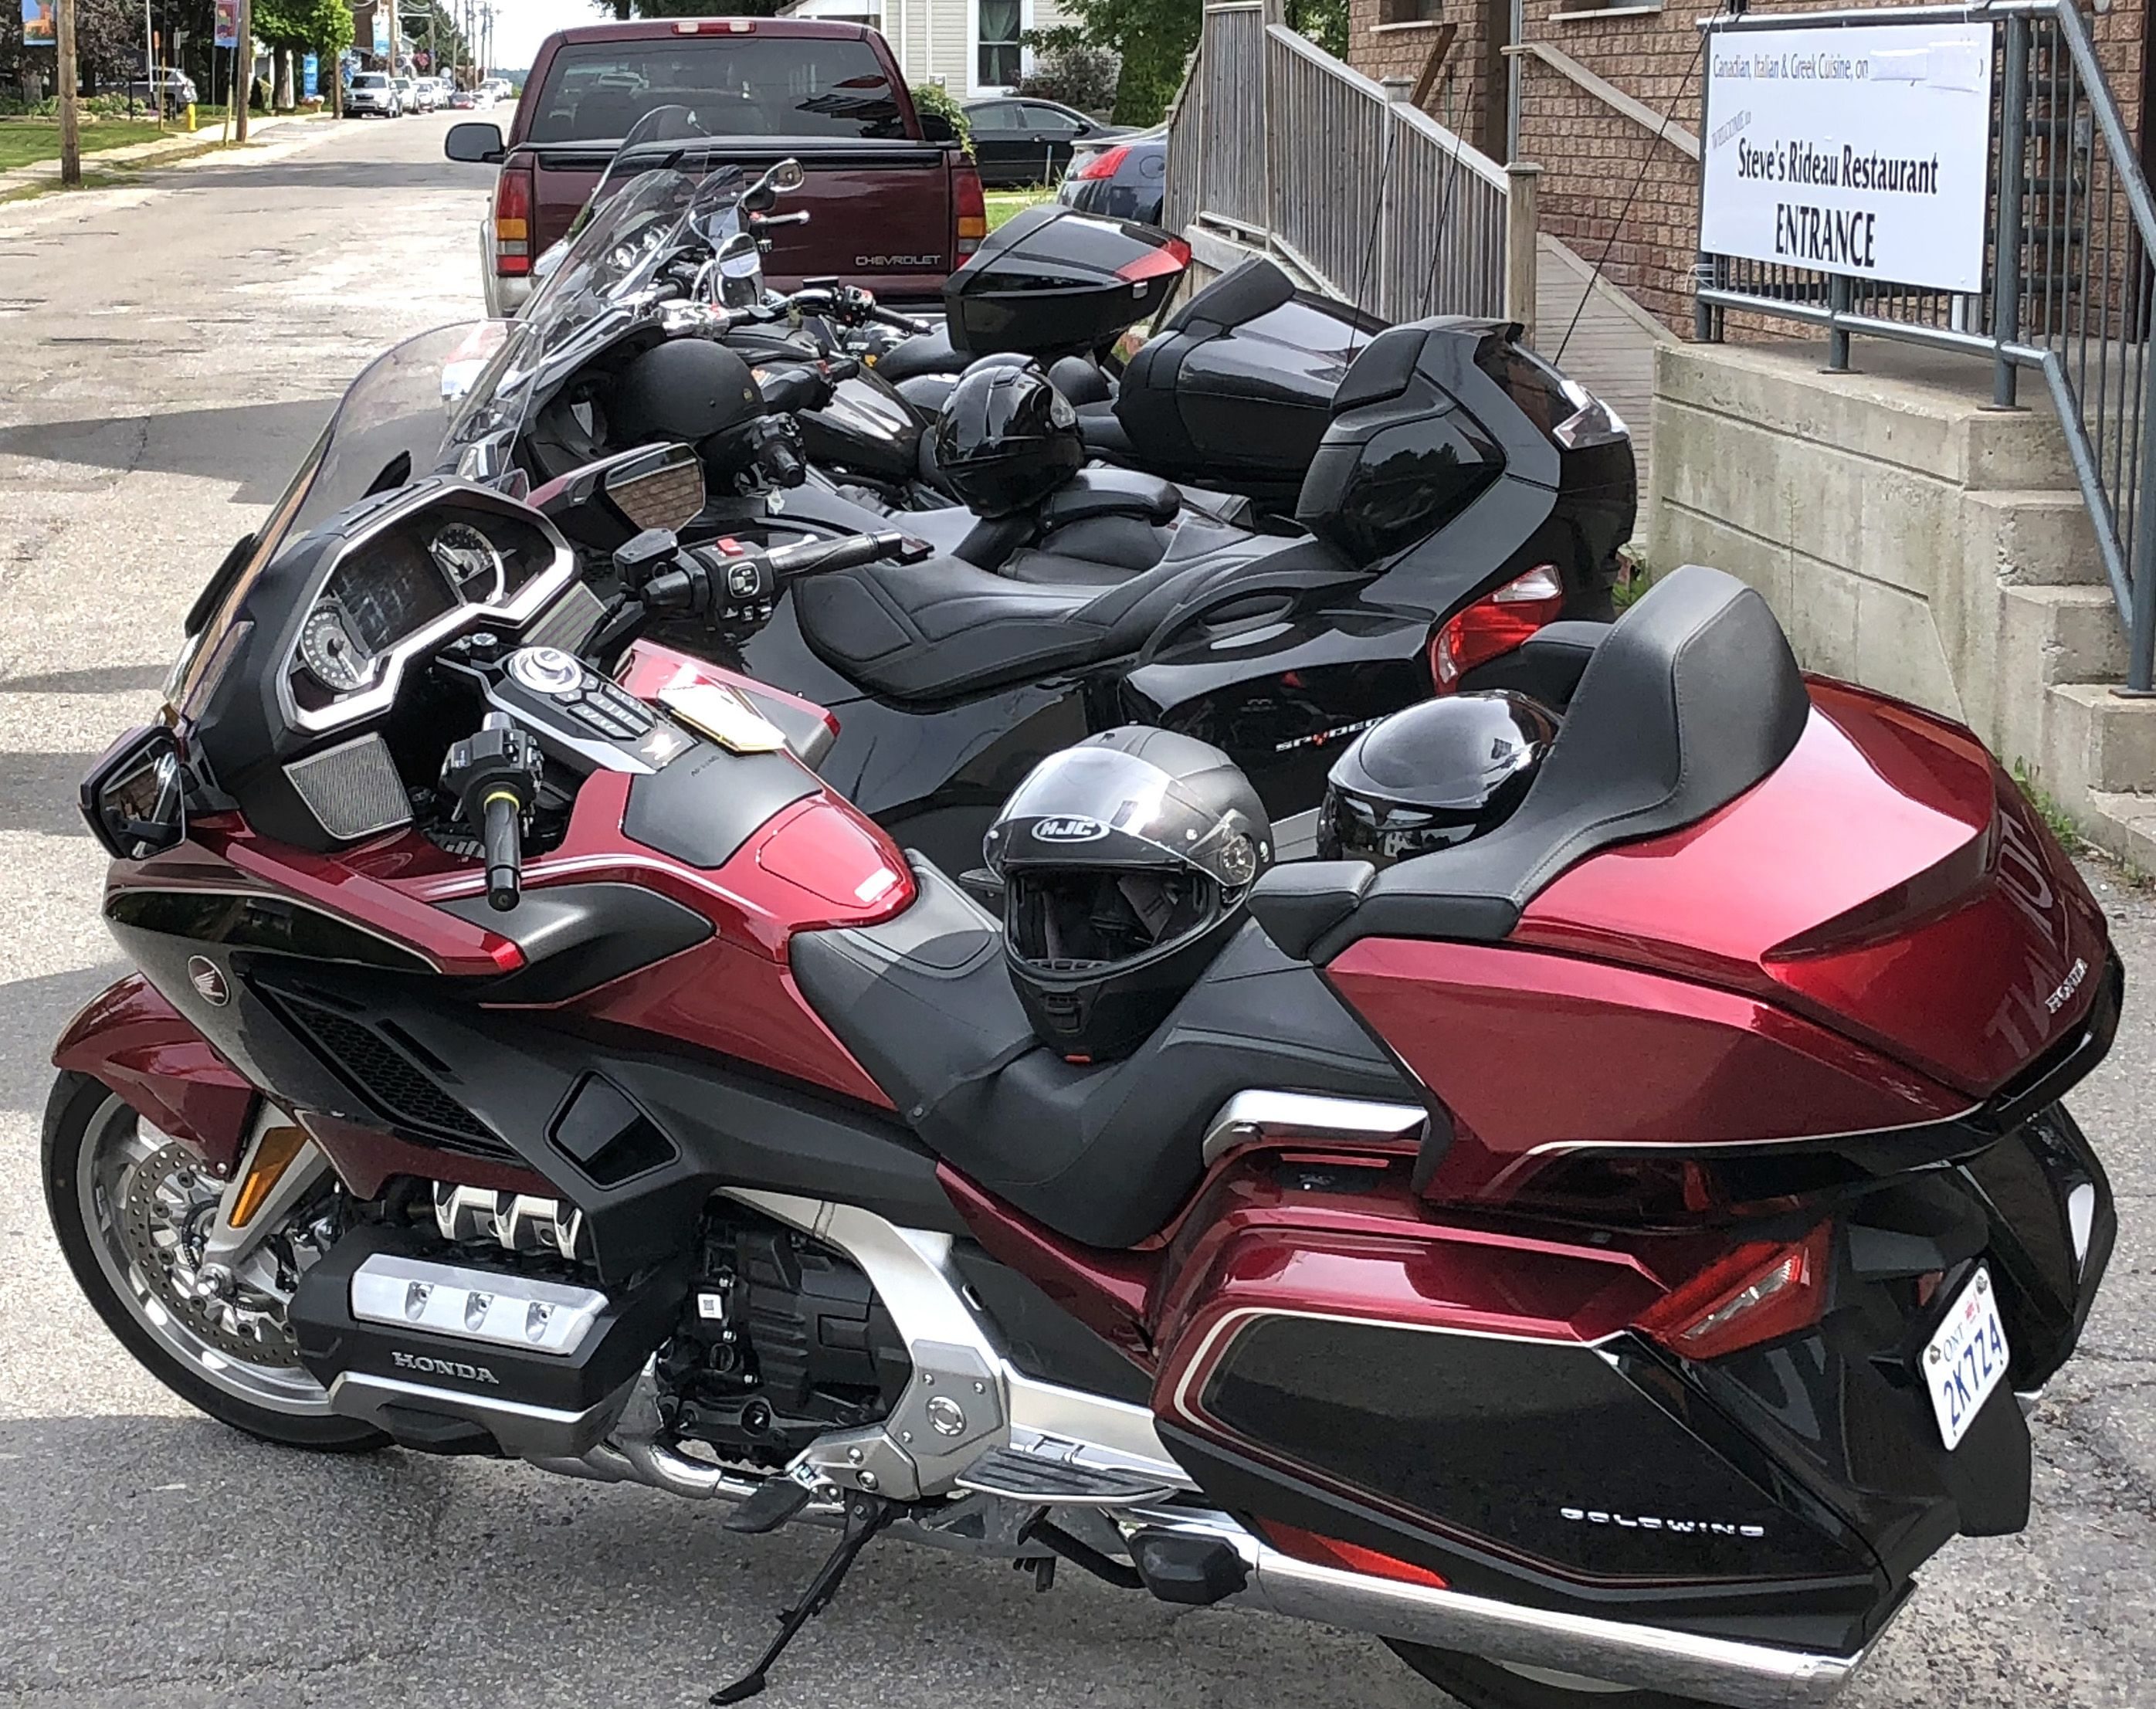 27 A 2020 Honda Gold Wing Review